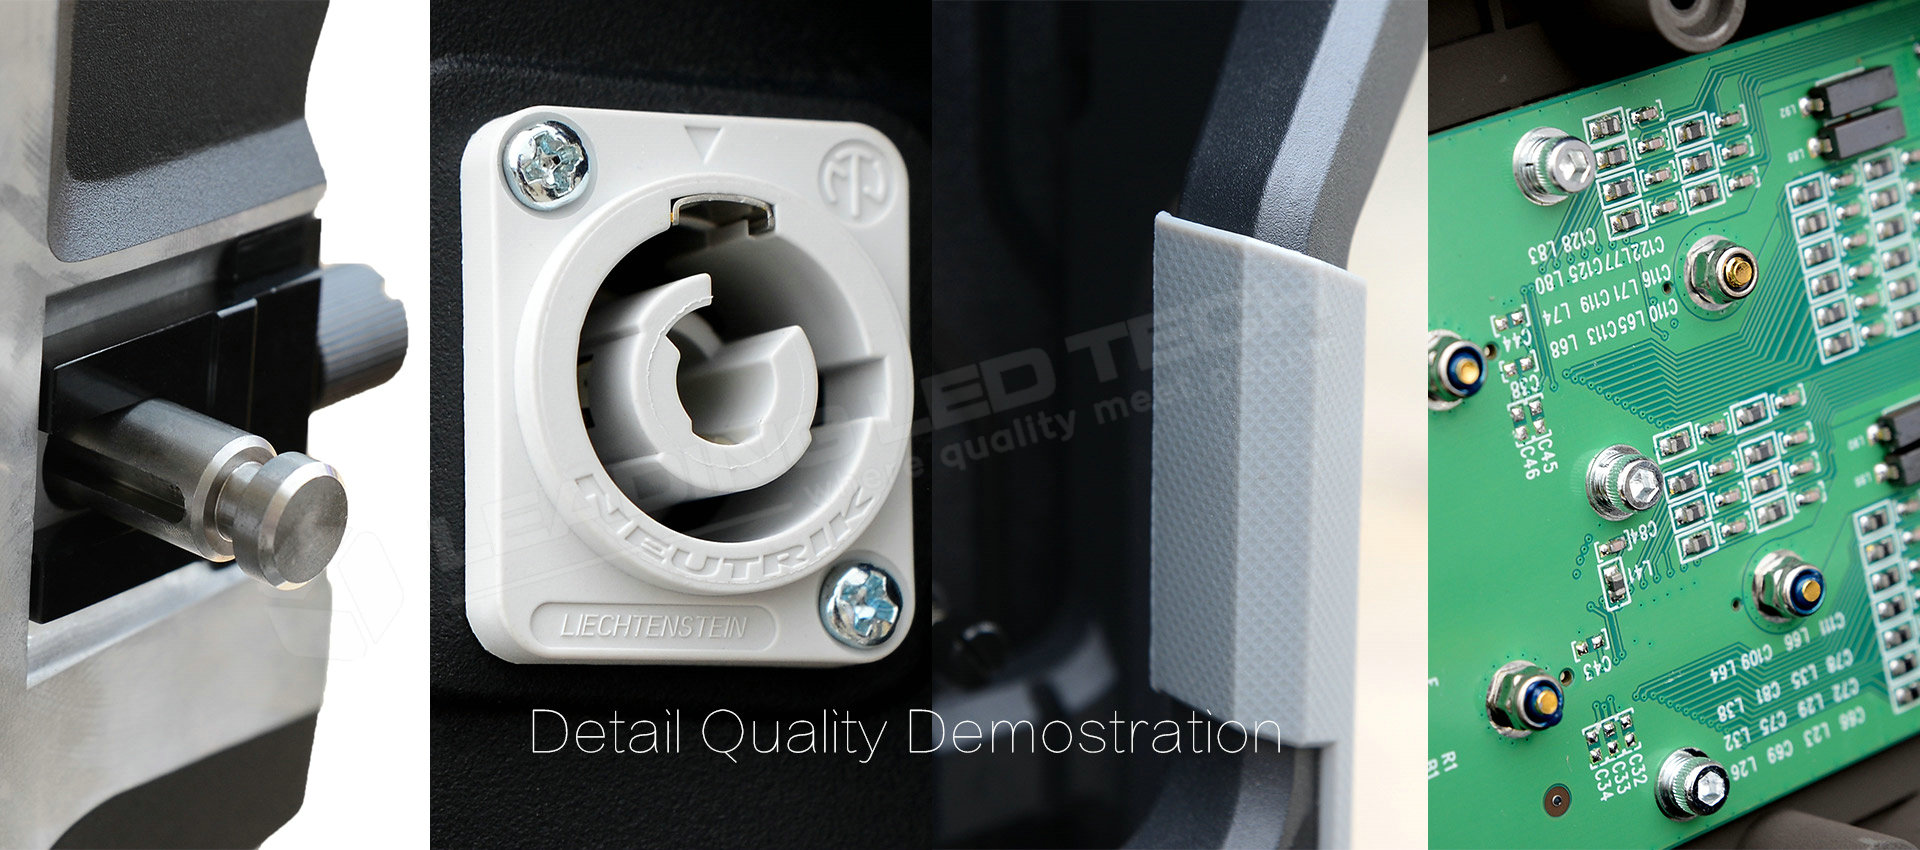 Detail Quality show LED rental cabinet Neutrik Connector 4 layer 1.6mm PCB board Rubber handle